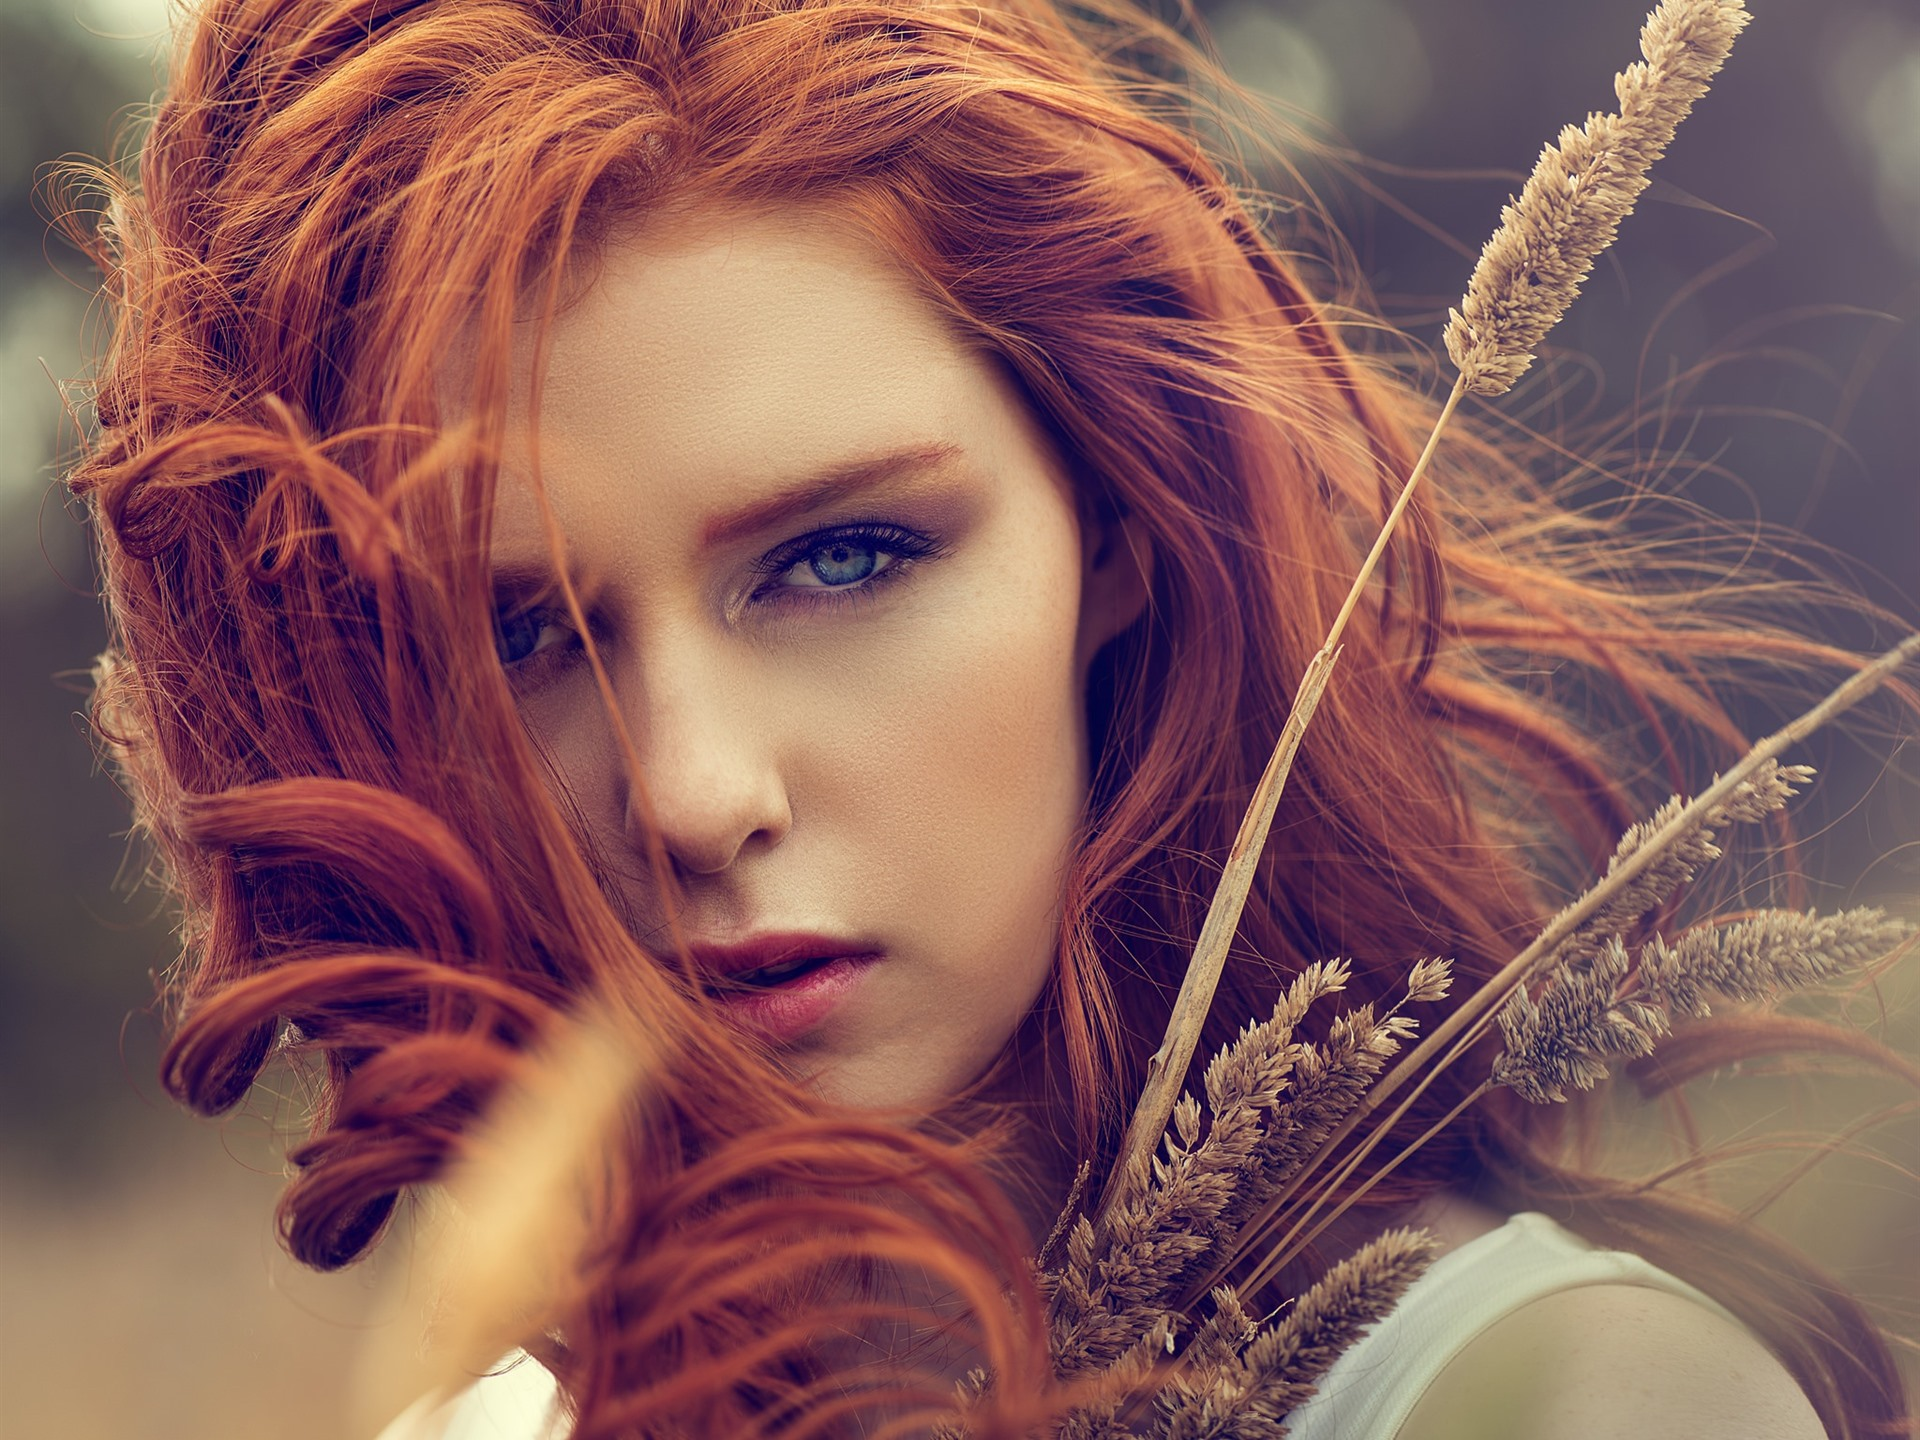 Wallpaper Red Hair Girl Blue Eyes Grass 1920x1440 Hd Picture Image